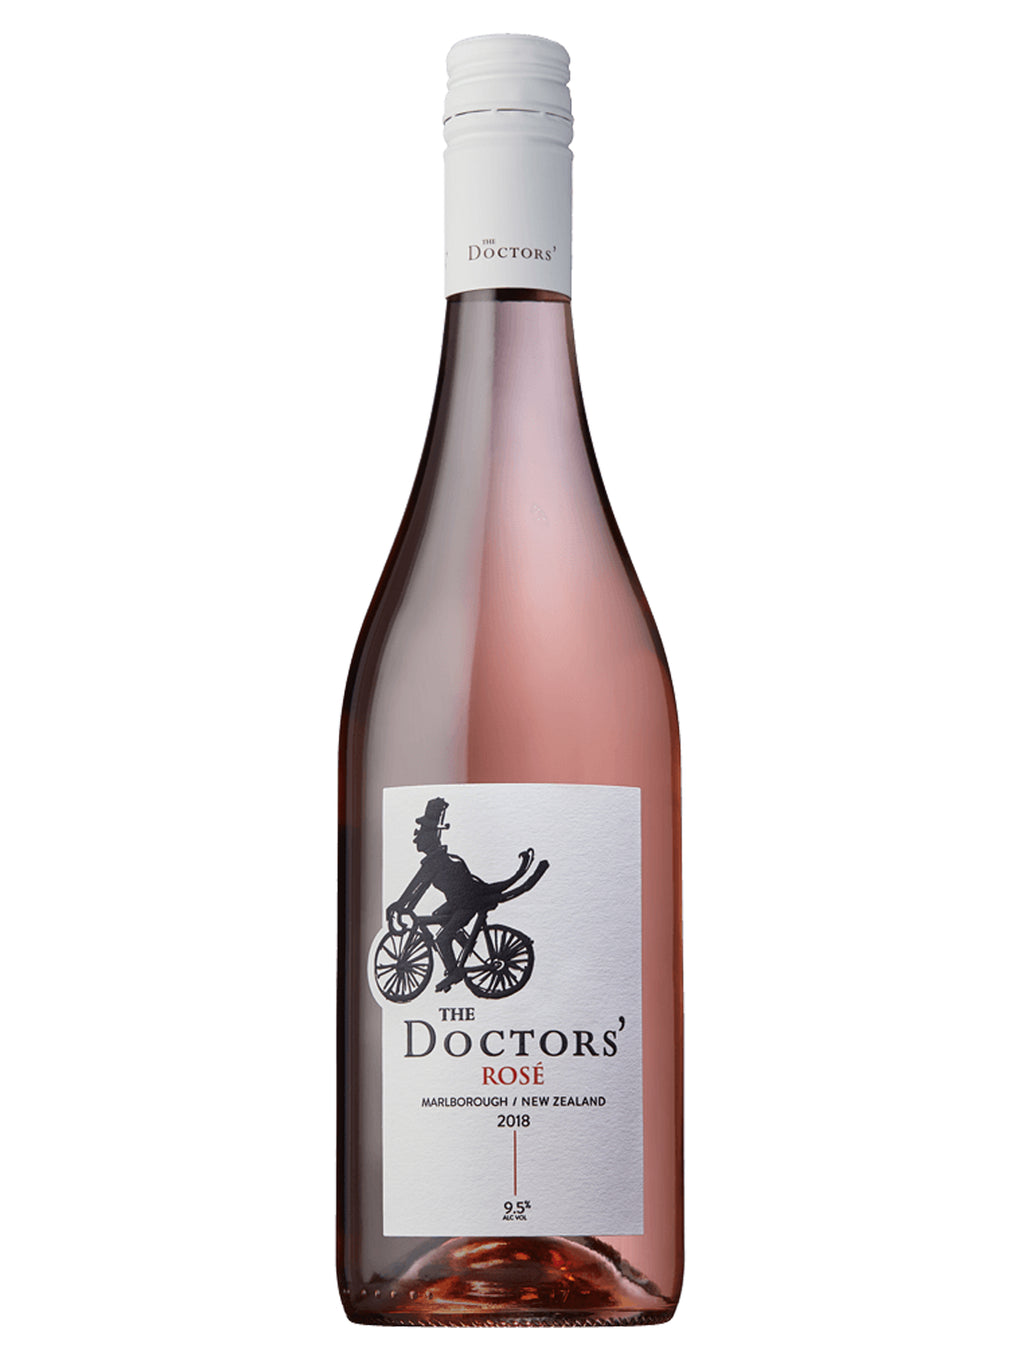 Forrest Wine, The Doctors' Rose, Marlborough Wine, Rose, New Zealand Wine Events, Winetopia, Auckland Wine Events, Auckland Restaurant Month, Drink Pink, New Zealand Rose